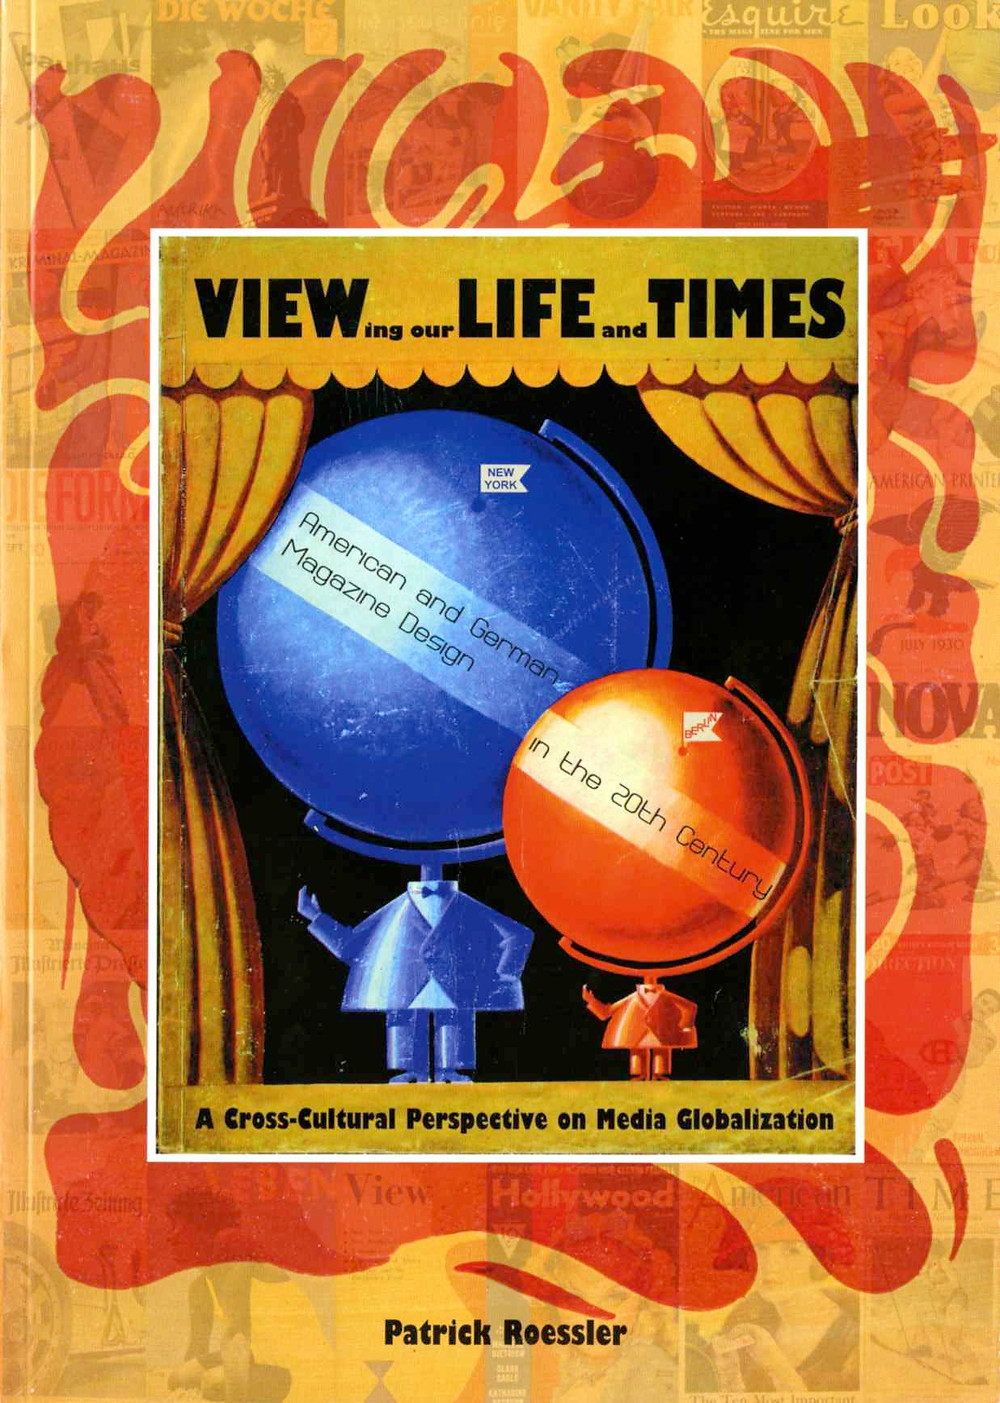 Viewing Our Life and Times: American and German Magazine Design in the 20th Century: A Cross-Cultural Perspective on Media Globalization